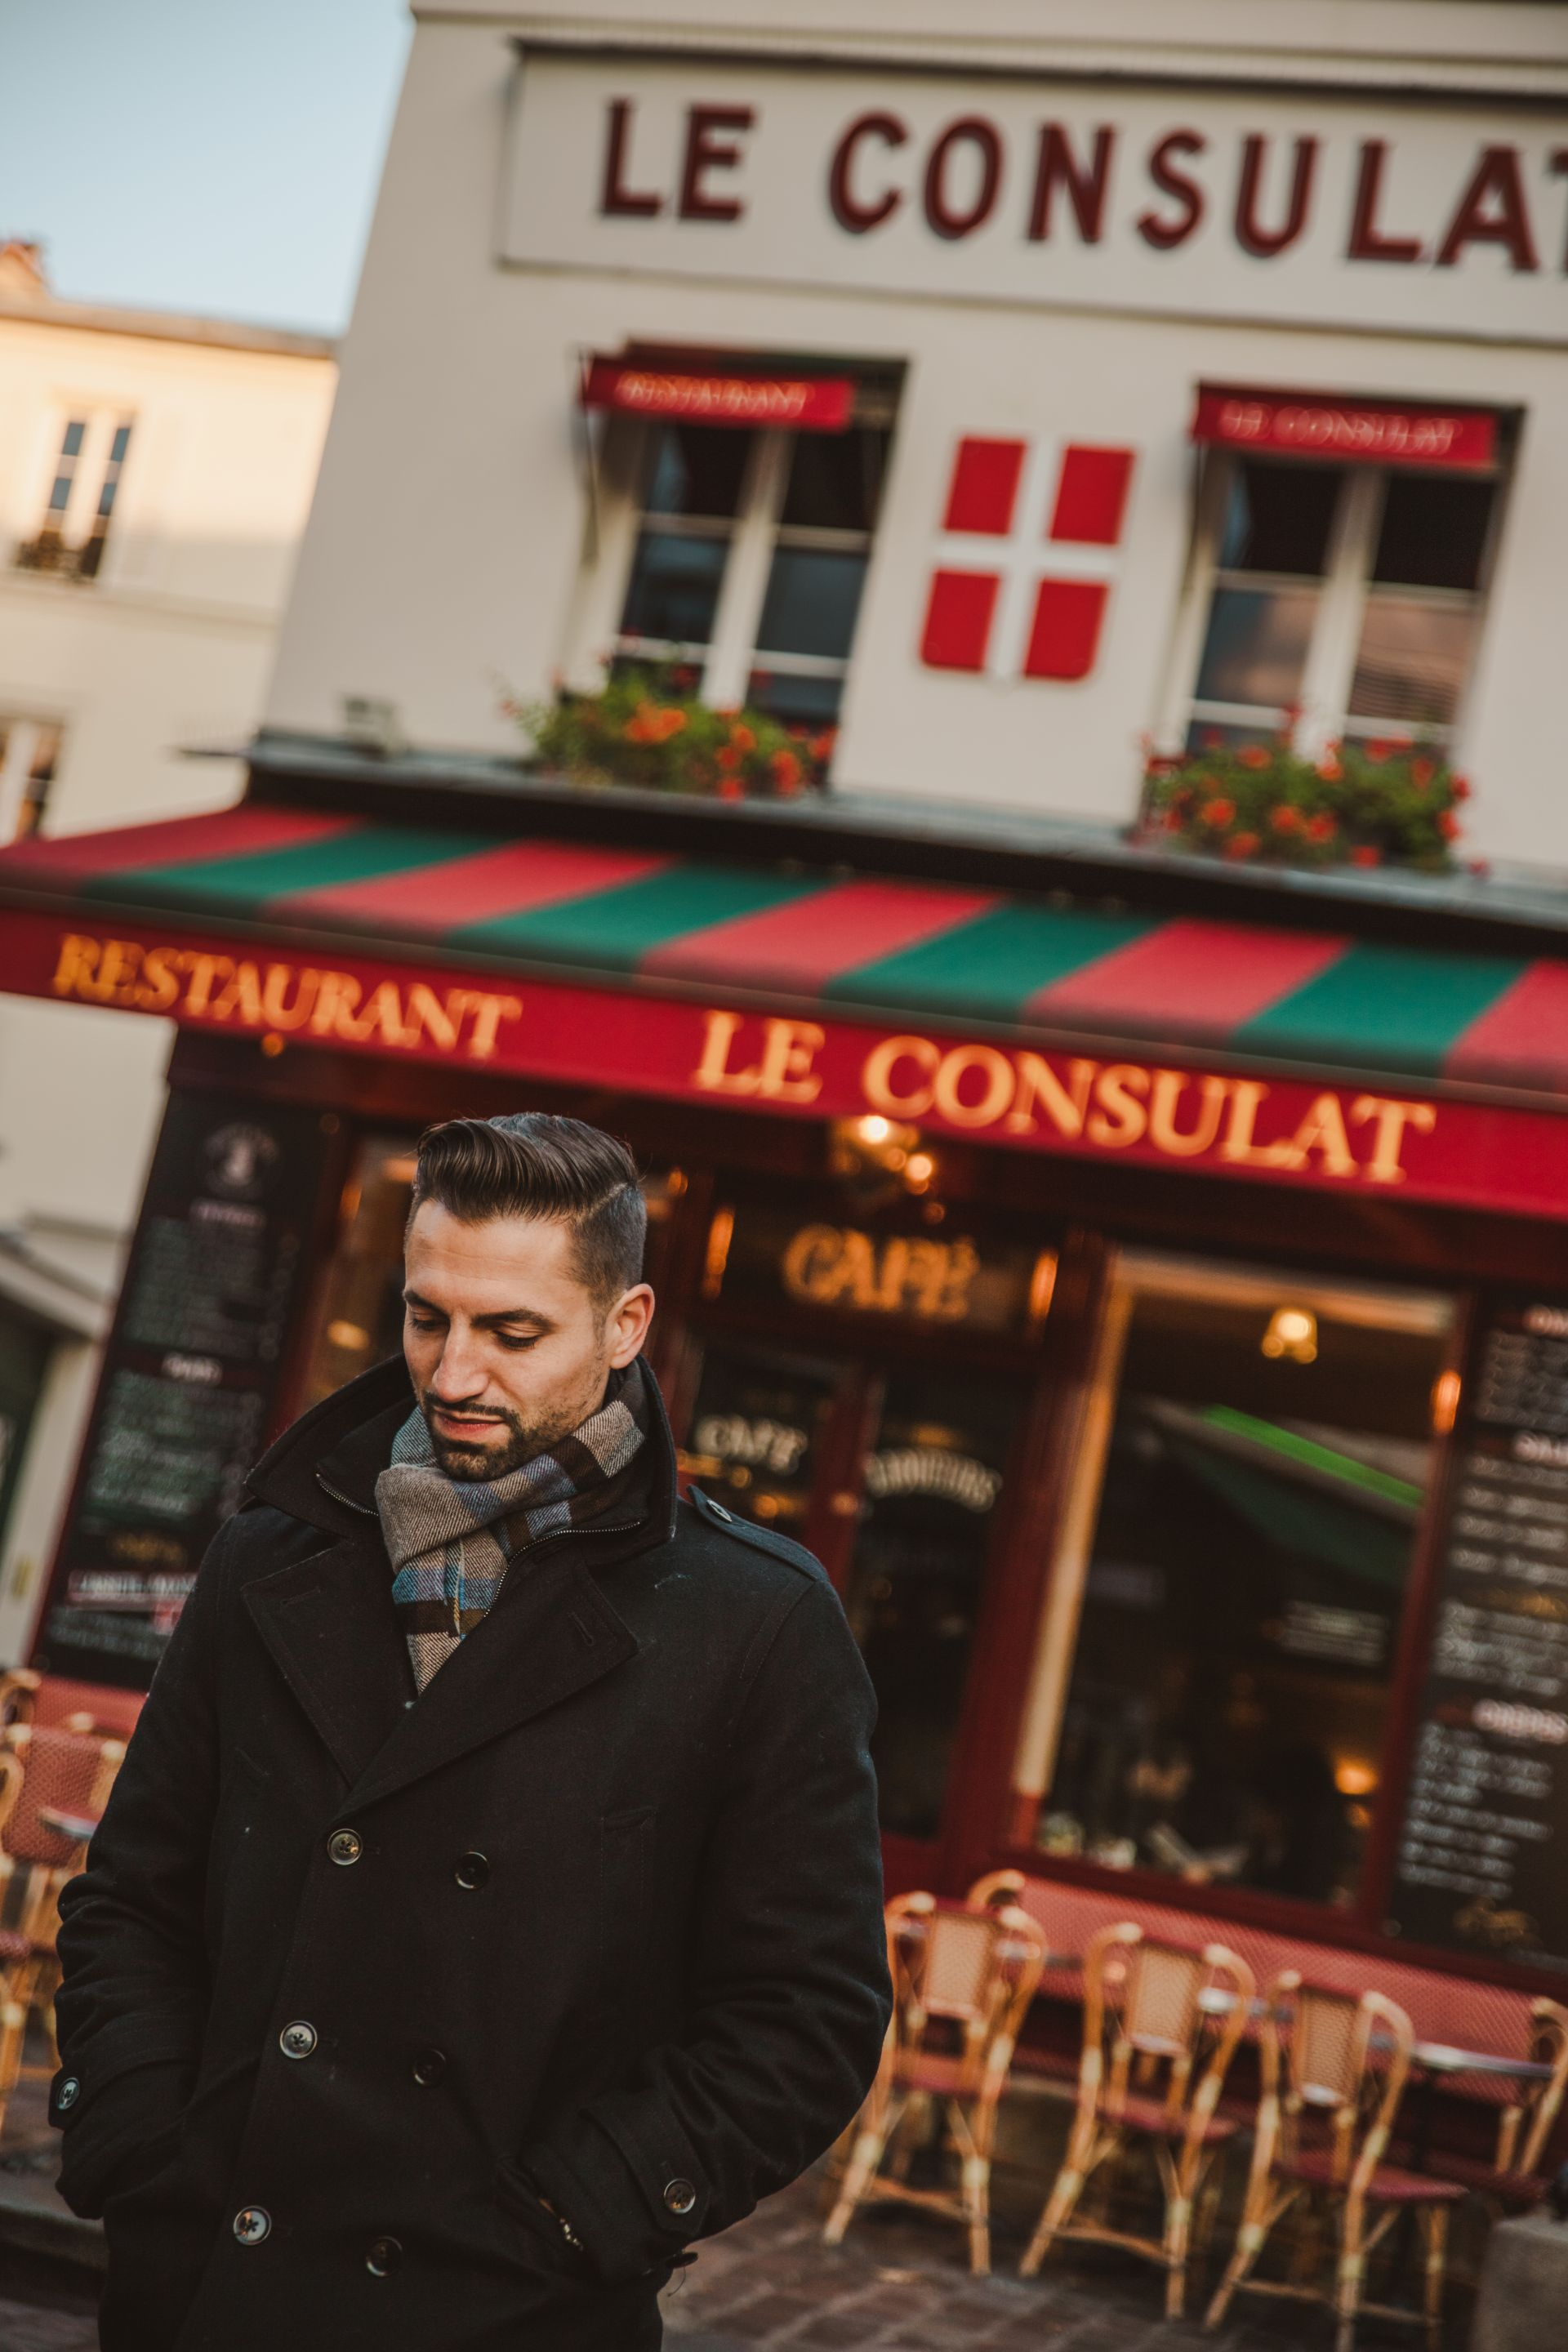 Dan in Paris Frane Walking out of Le Consulat Restaurant